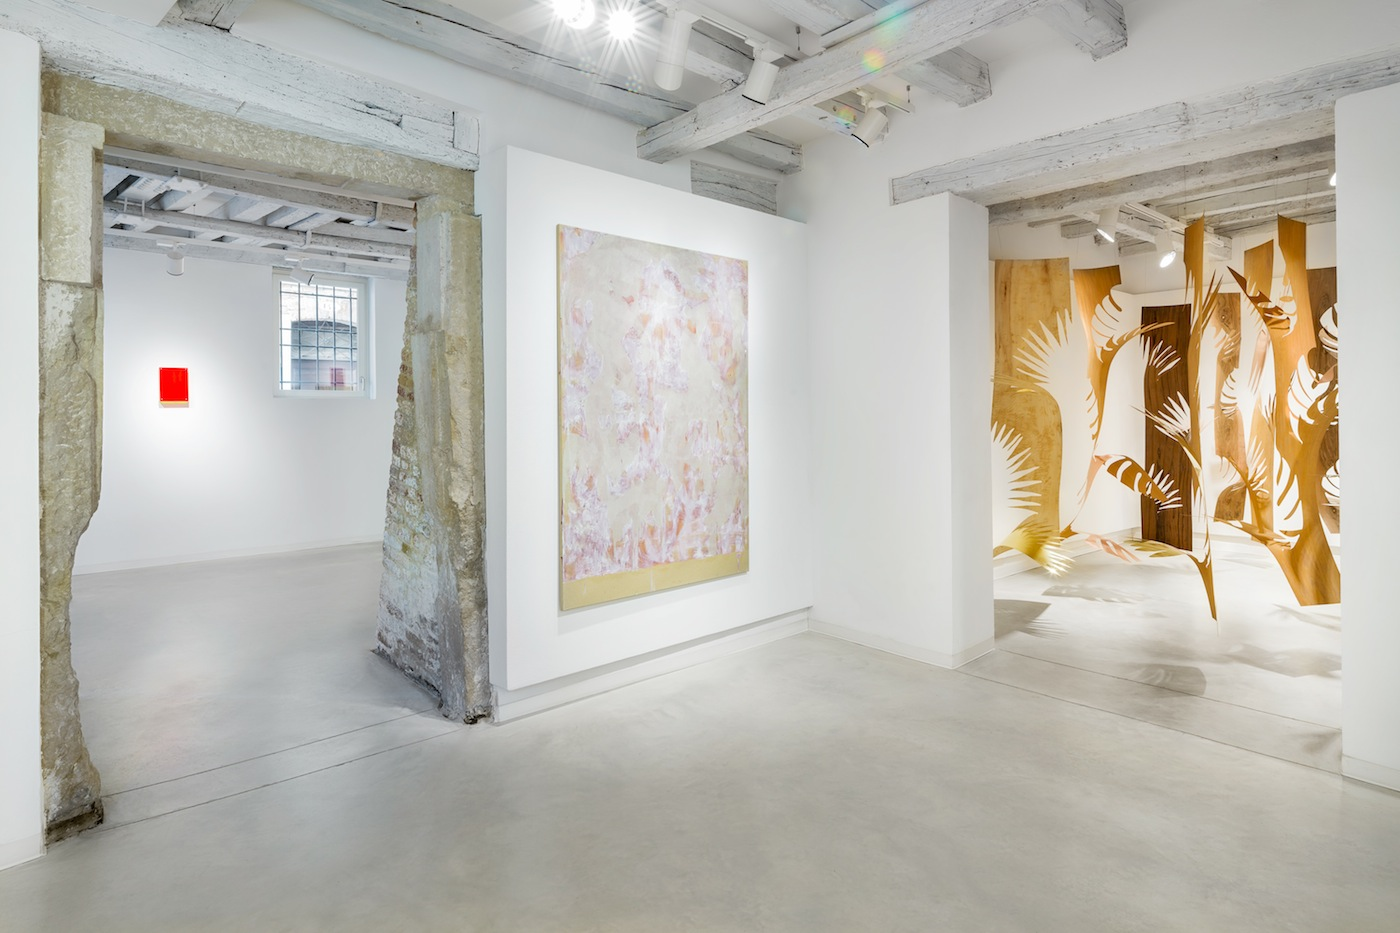 The-hidden-dimension-installation-view-Francesco-Candeloro-Tyra-Tingleff-Laura-Renna